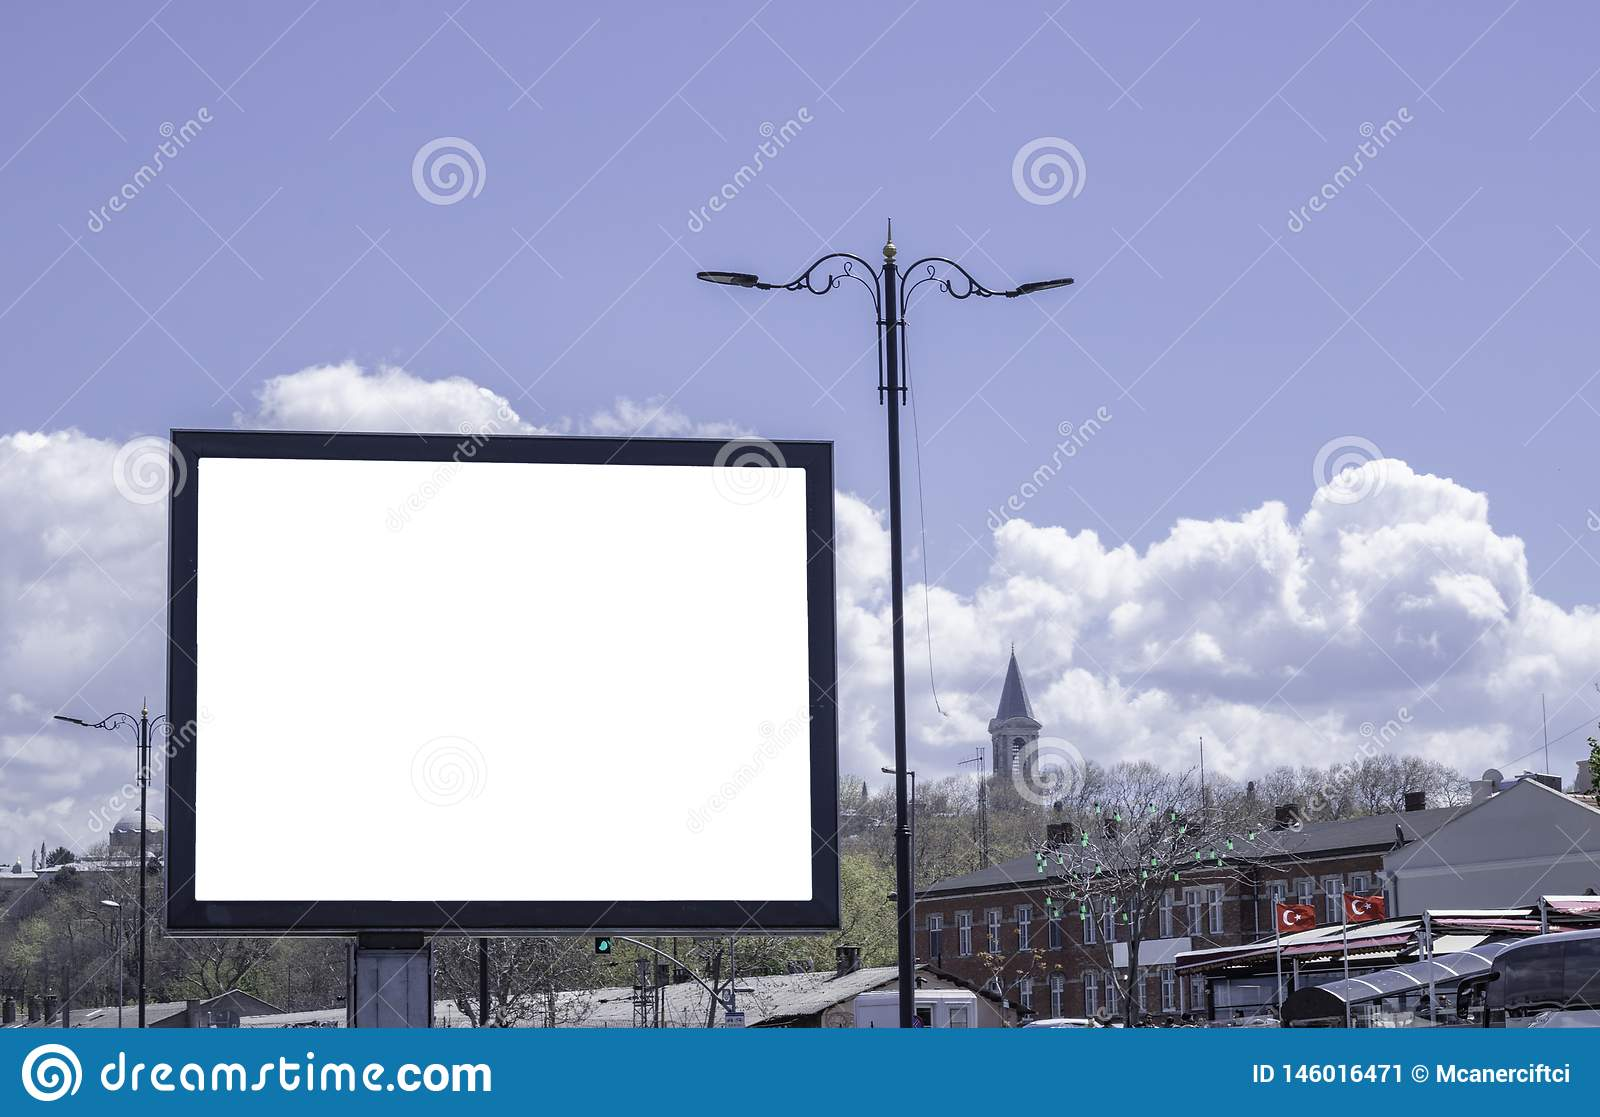 Billboards in parks and outdoors